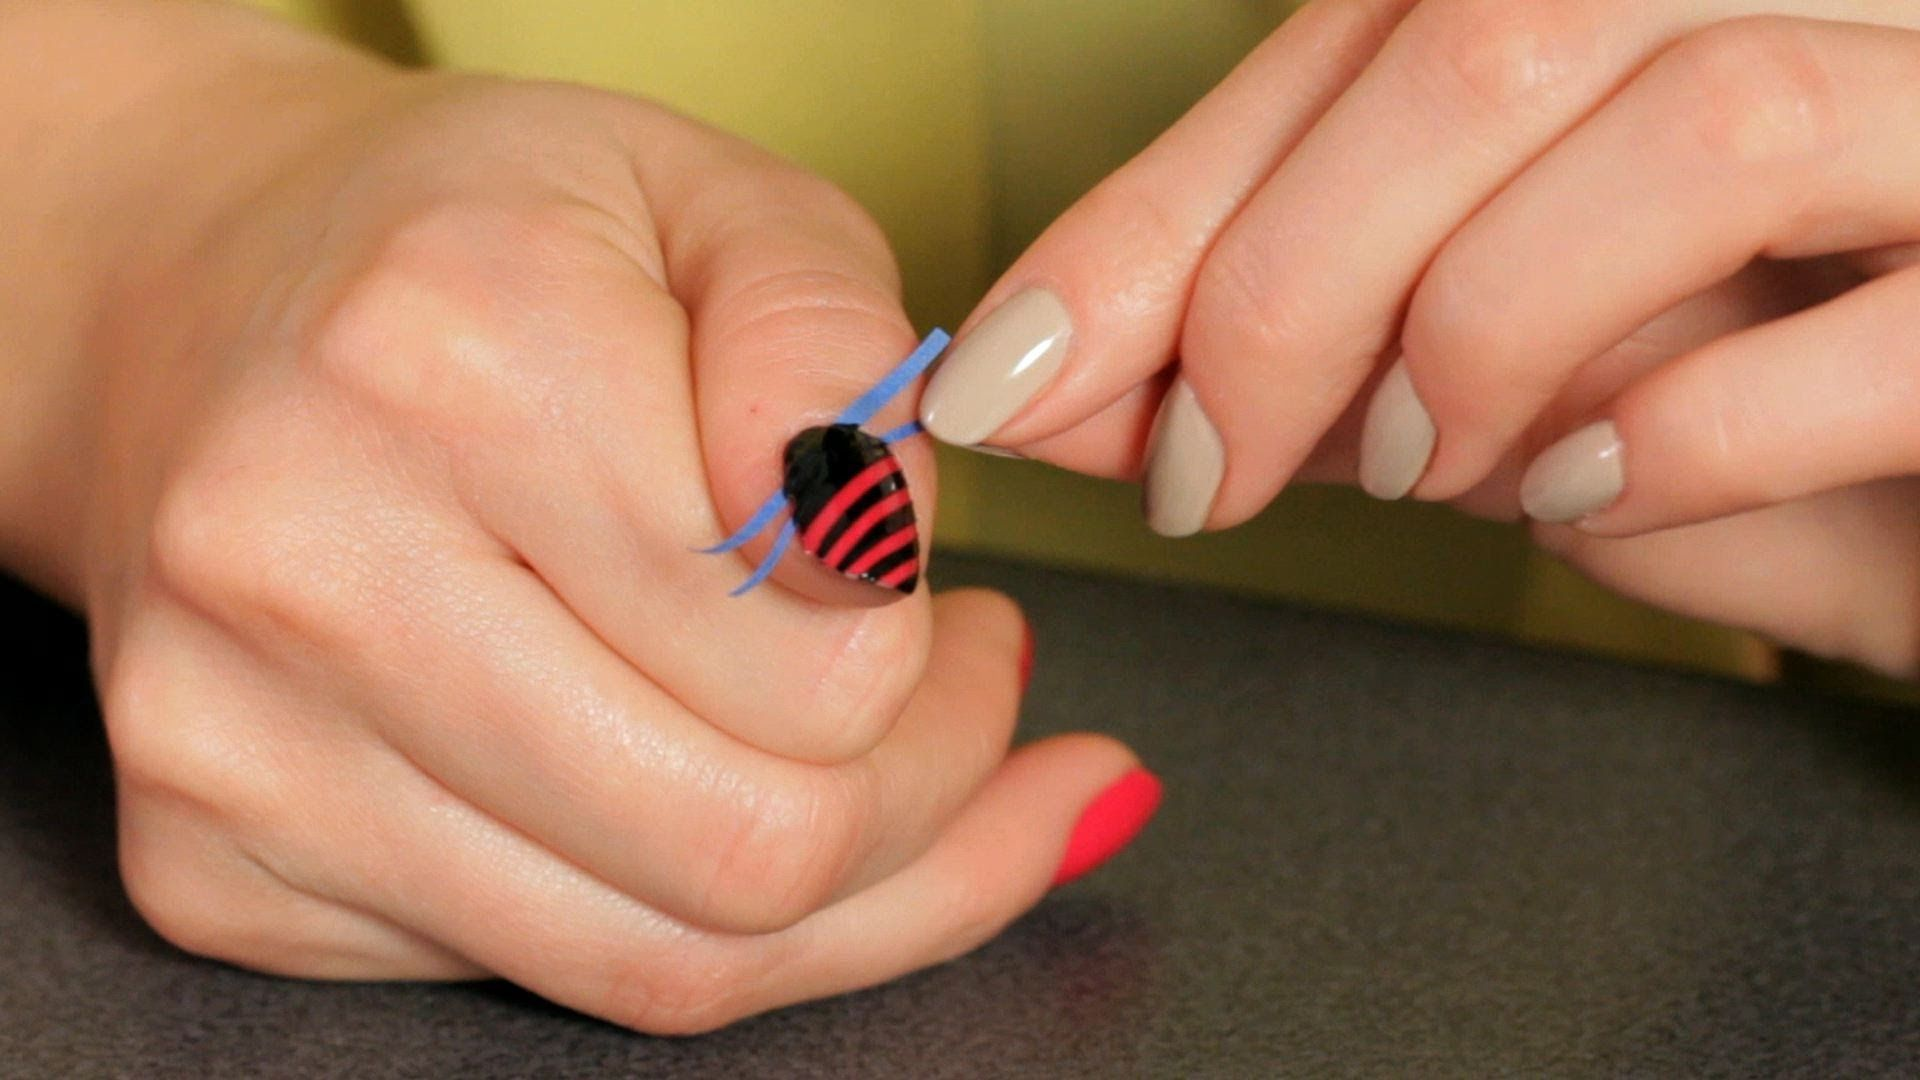 Watch More How To Do Nail Art Videos: Http://www.howcast